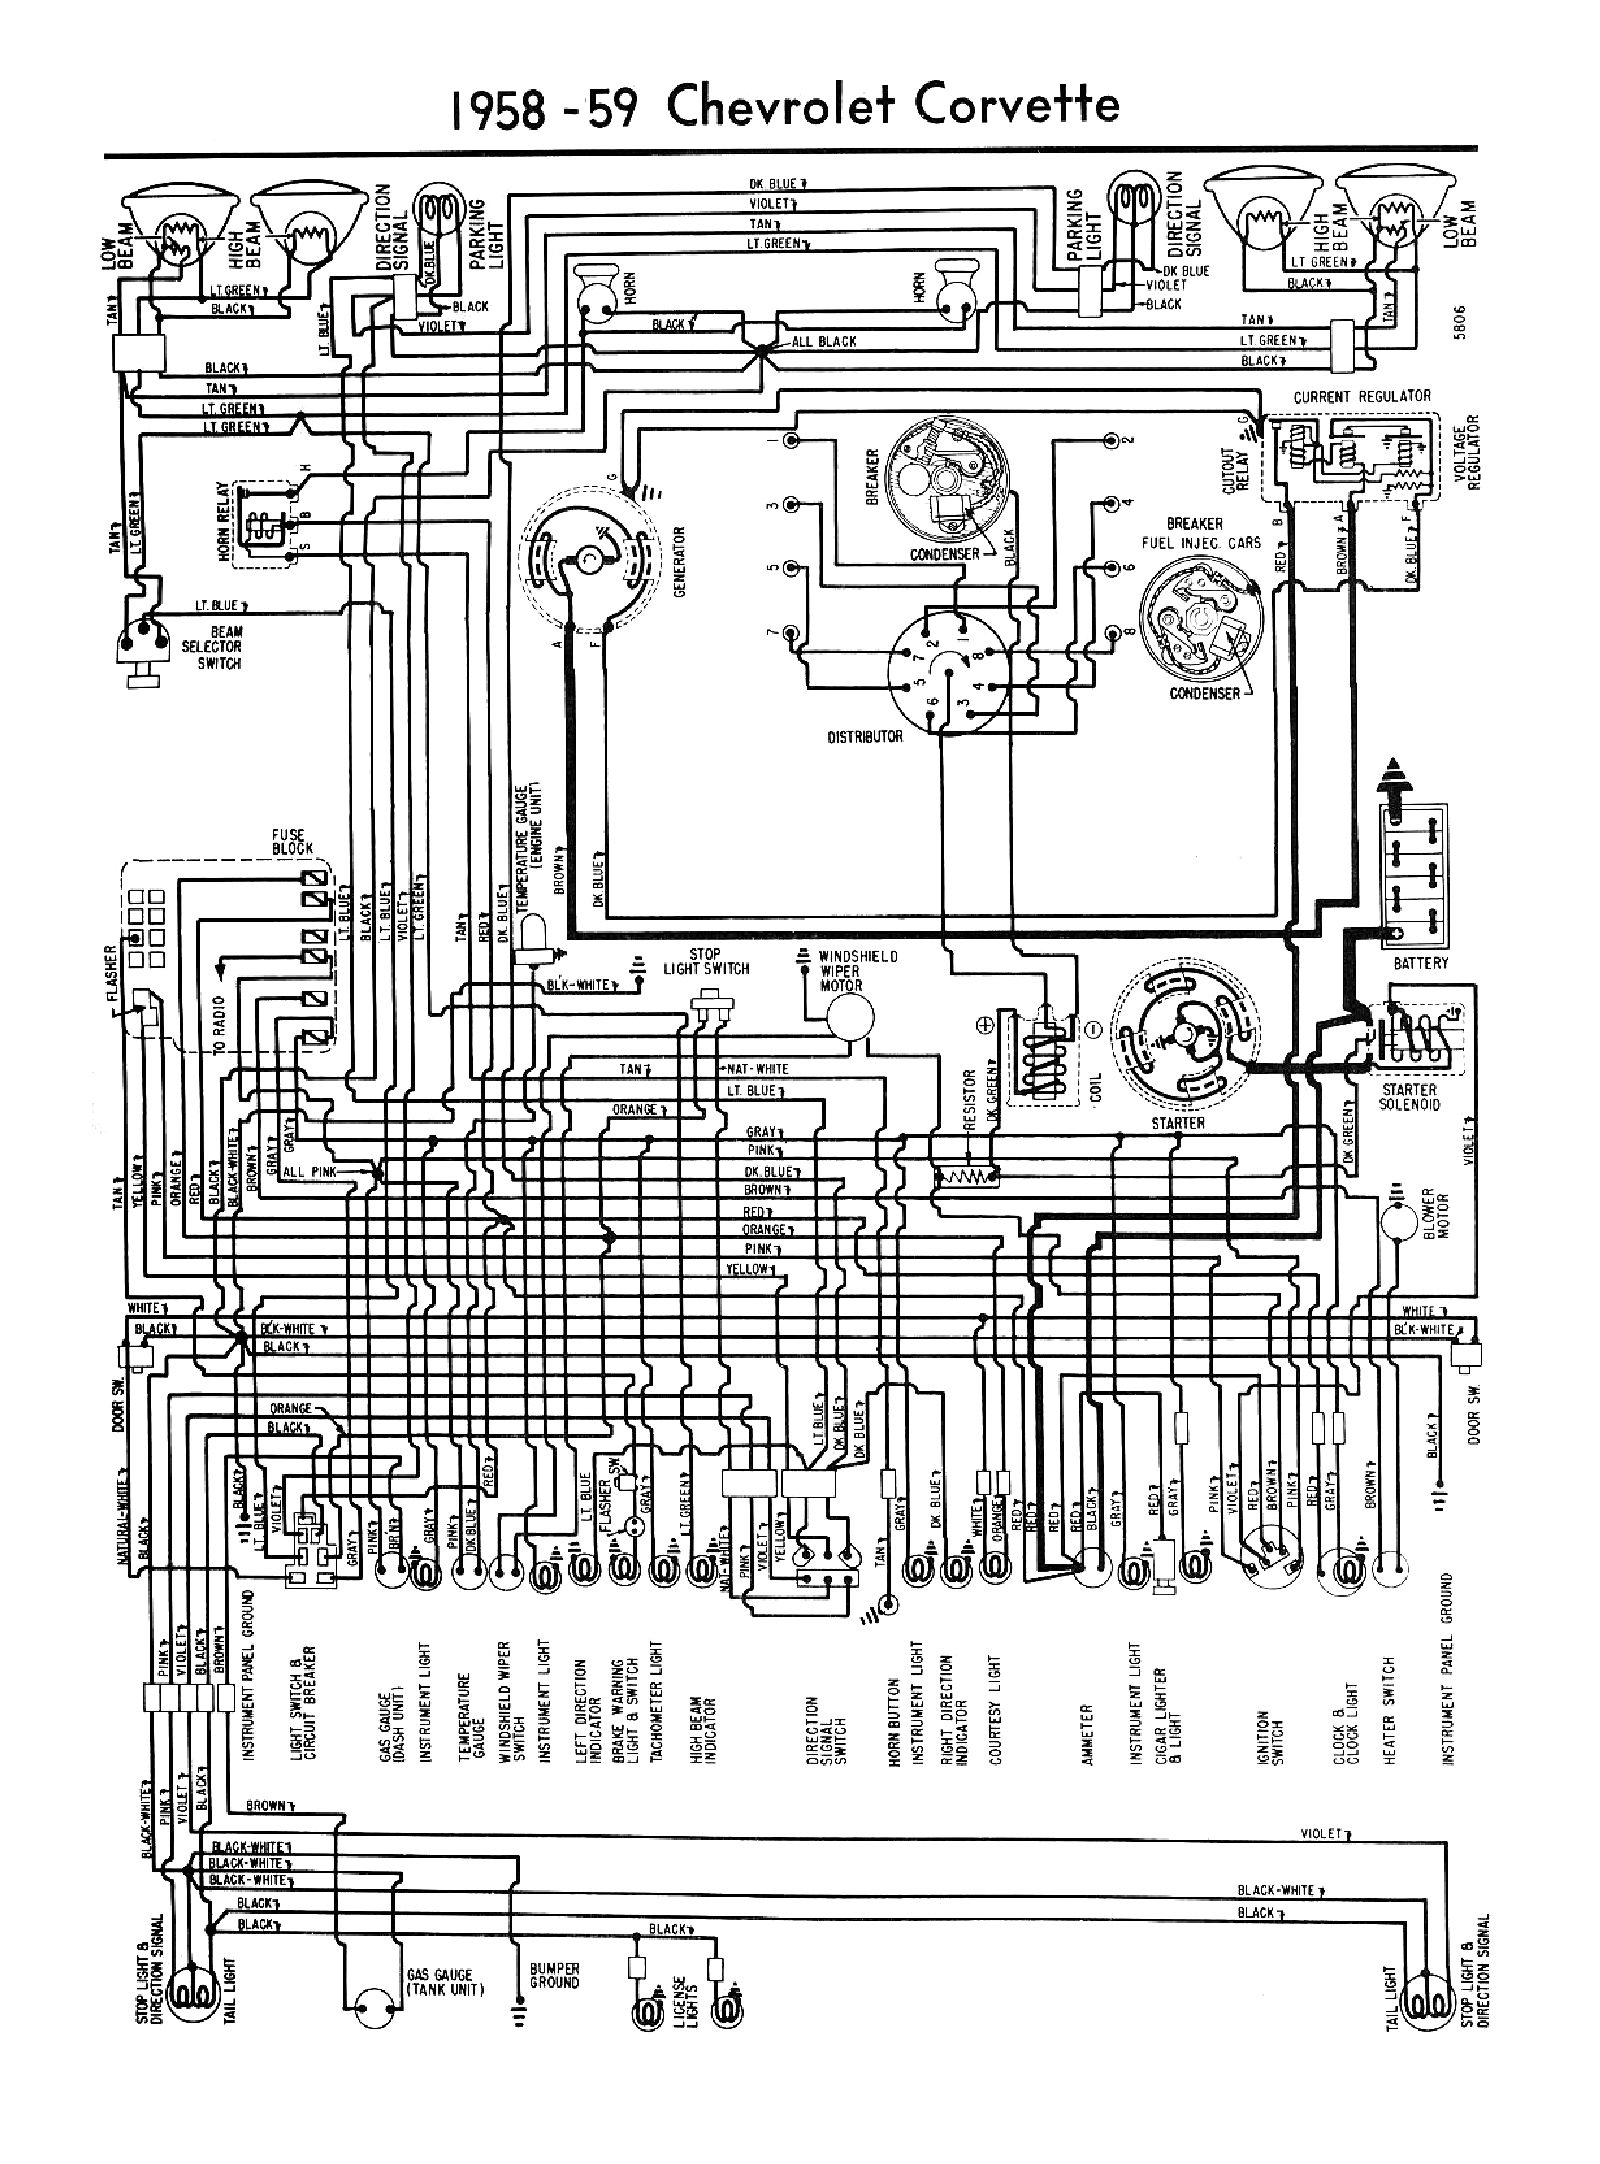 hight resolution of 1960 c10 wiring diagram wiring diagrams 1960 chevrolet wagon wiring diagram 1960 c10 wiring diagram wiring